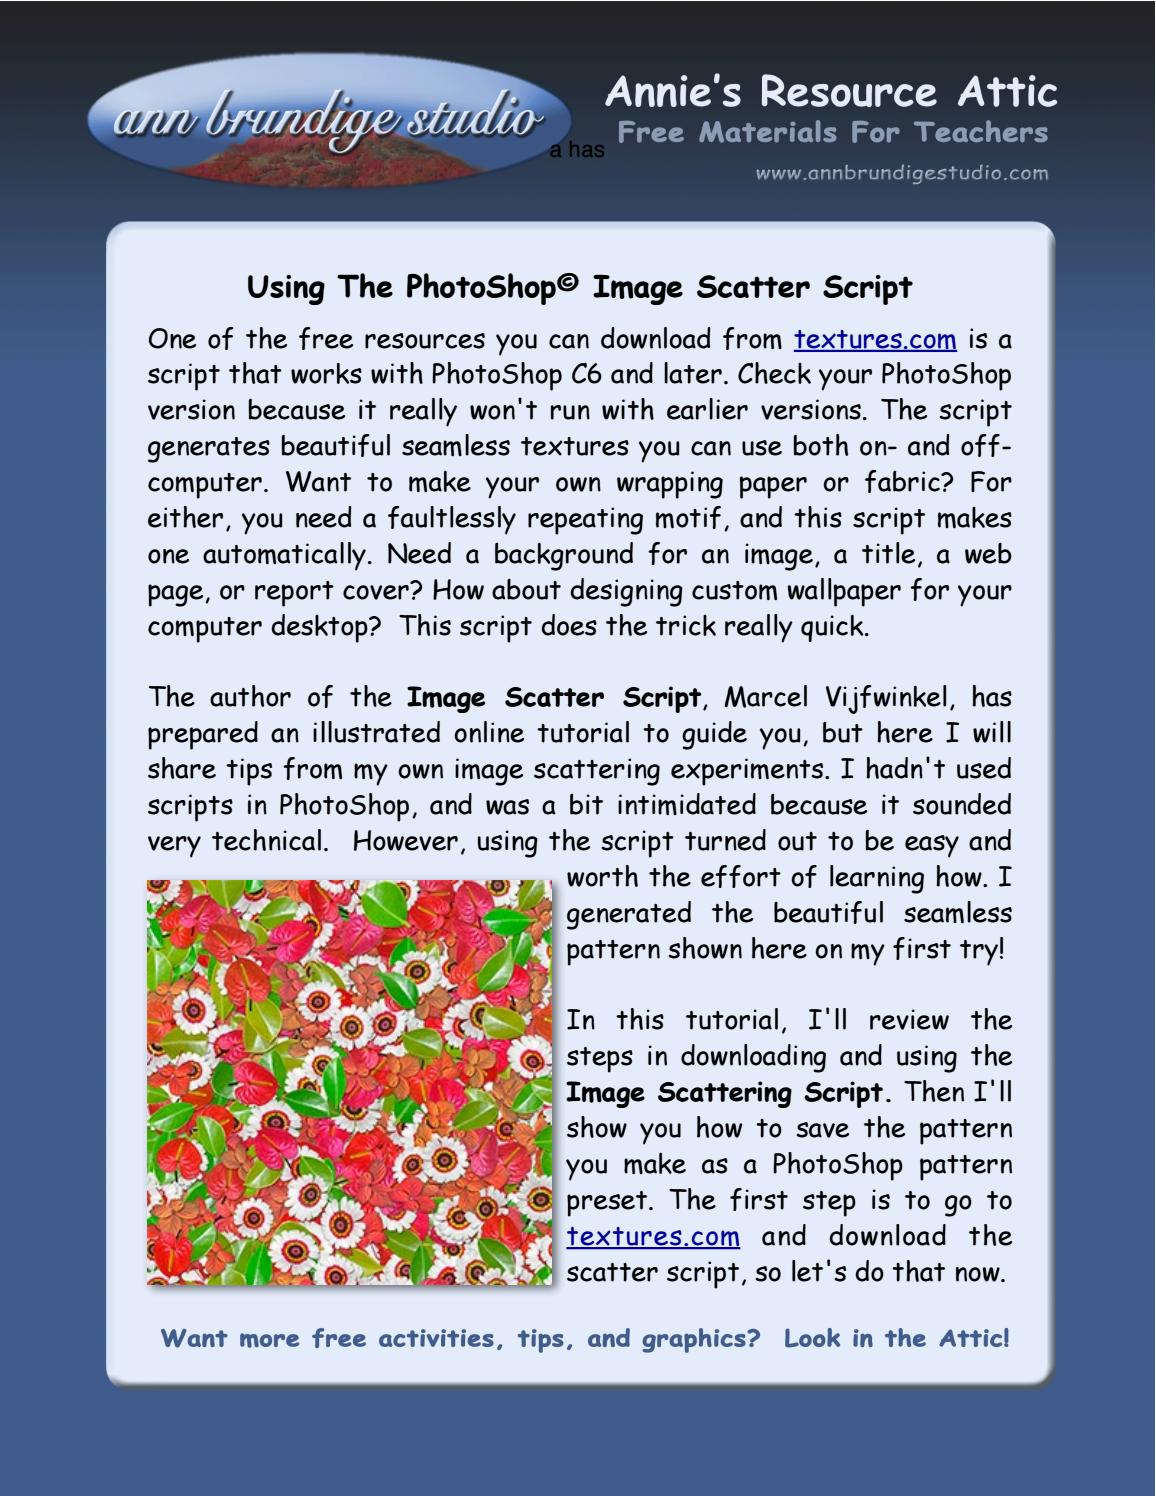 Photoshop image scatter script tutorial by annies tutorials online photoshop image scatter script tutorial by annies tutorials online issuu baditri Images